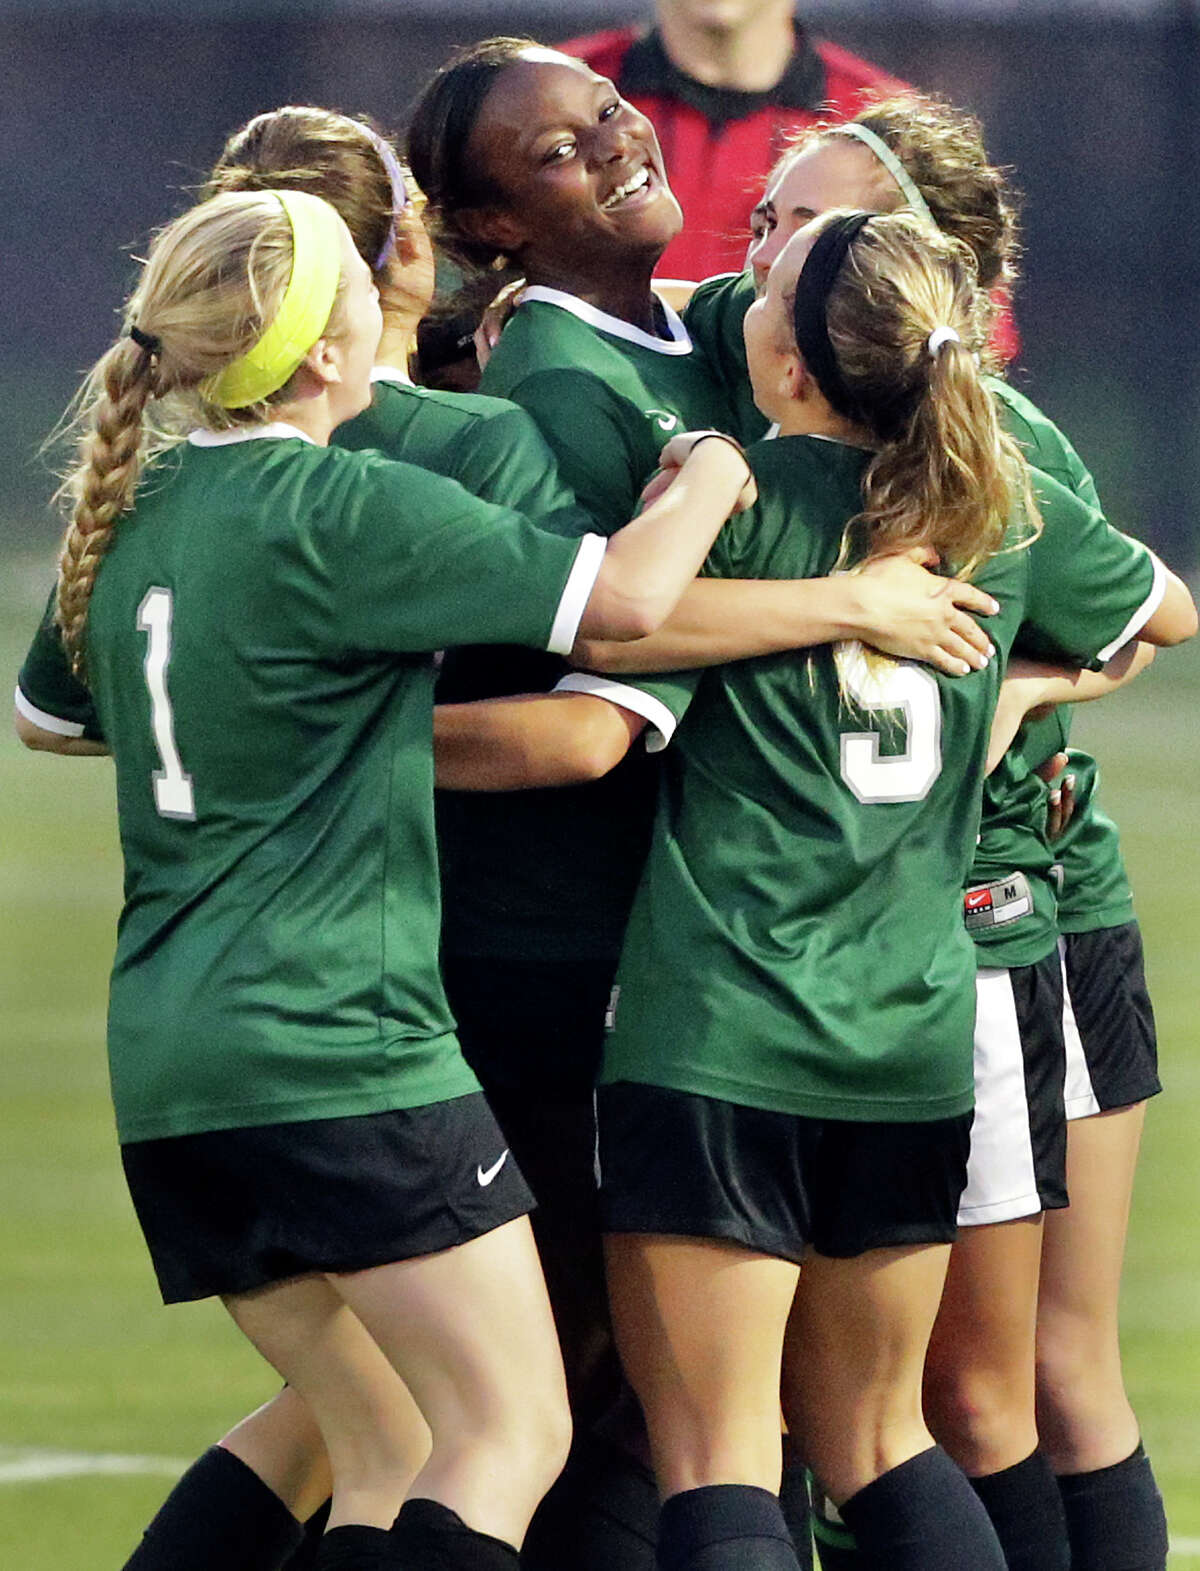 Teammates congratulate Tia Pearcy on her goal which proved to be the winning score as the Reagan girls beat Smithson Valley 1-0 in third round 6A soccer playoffs at the UTSA Park West Complex on April 7, 2015.